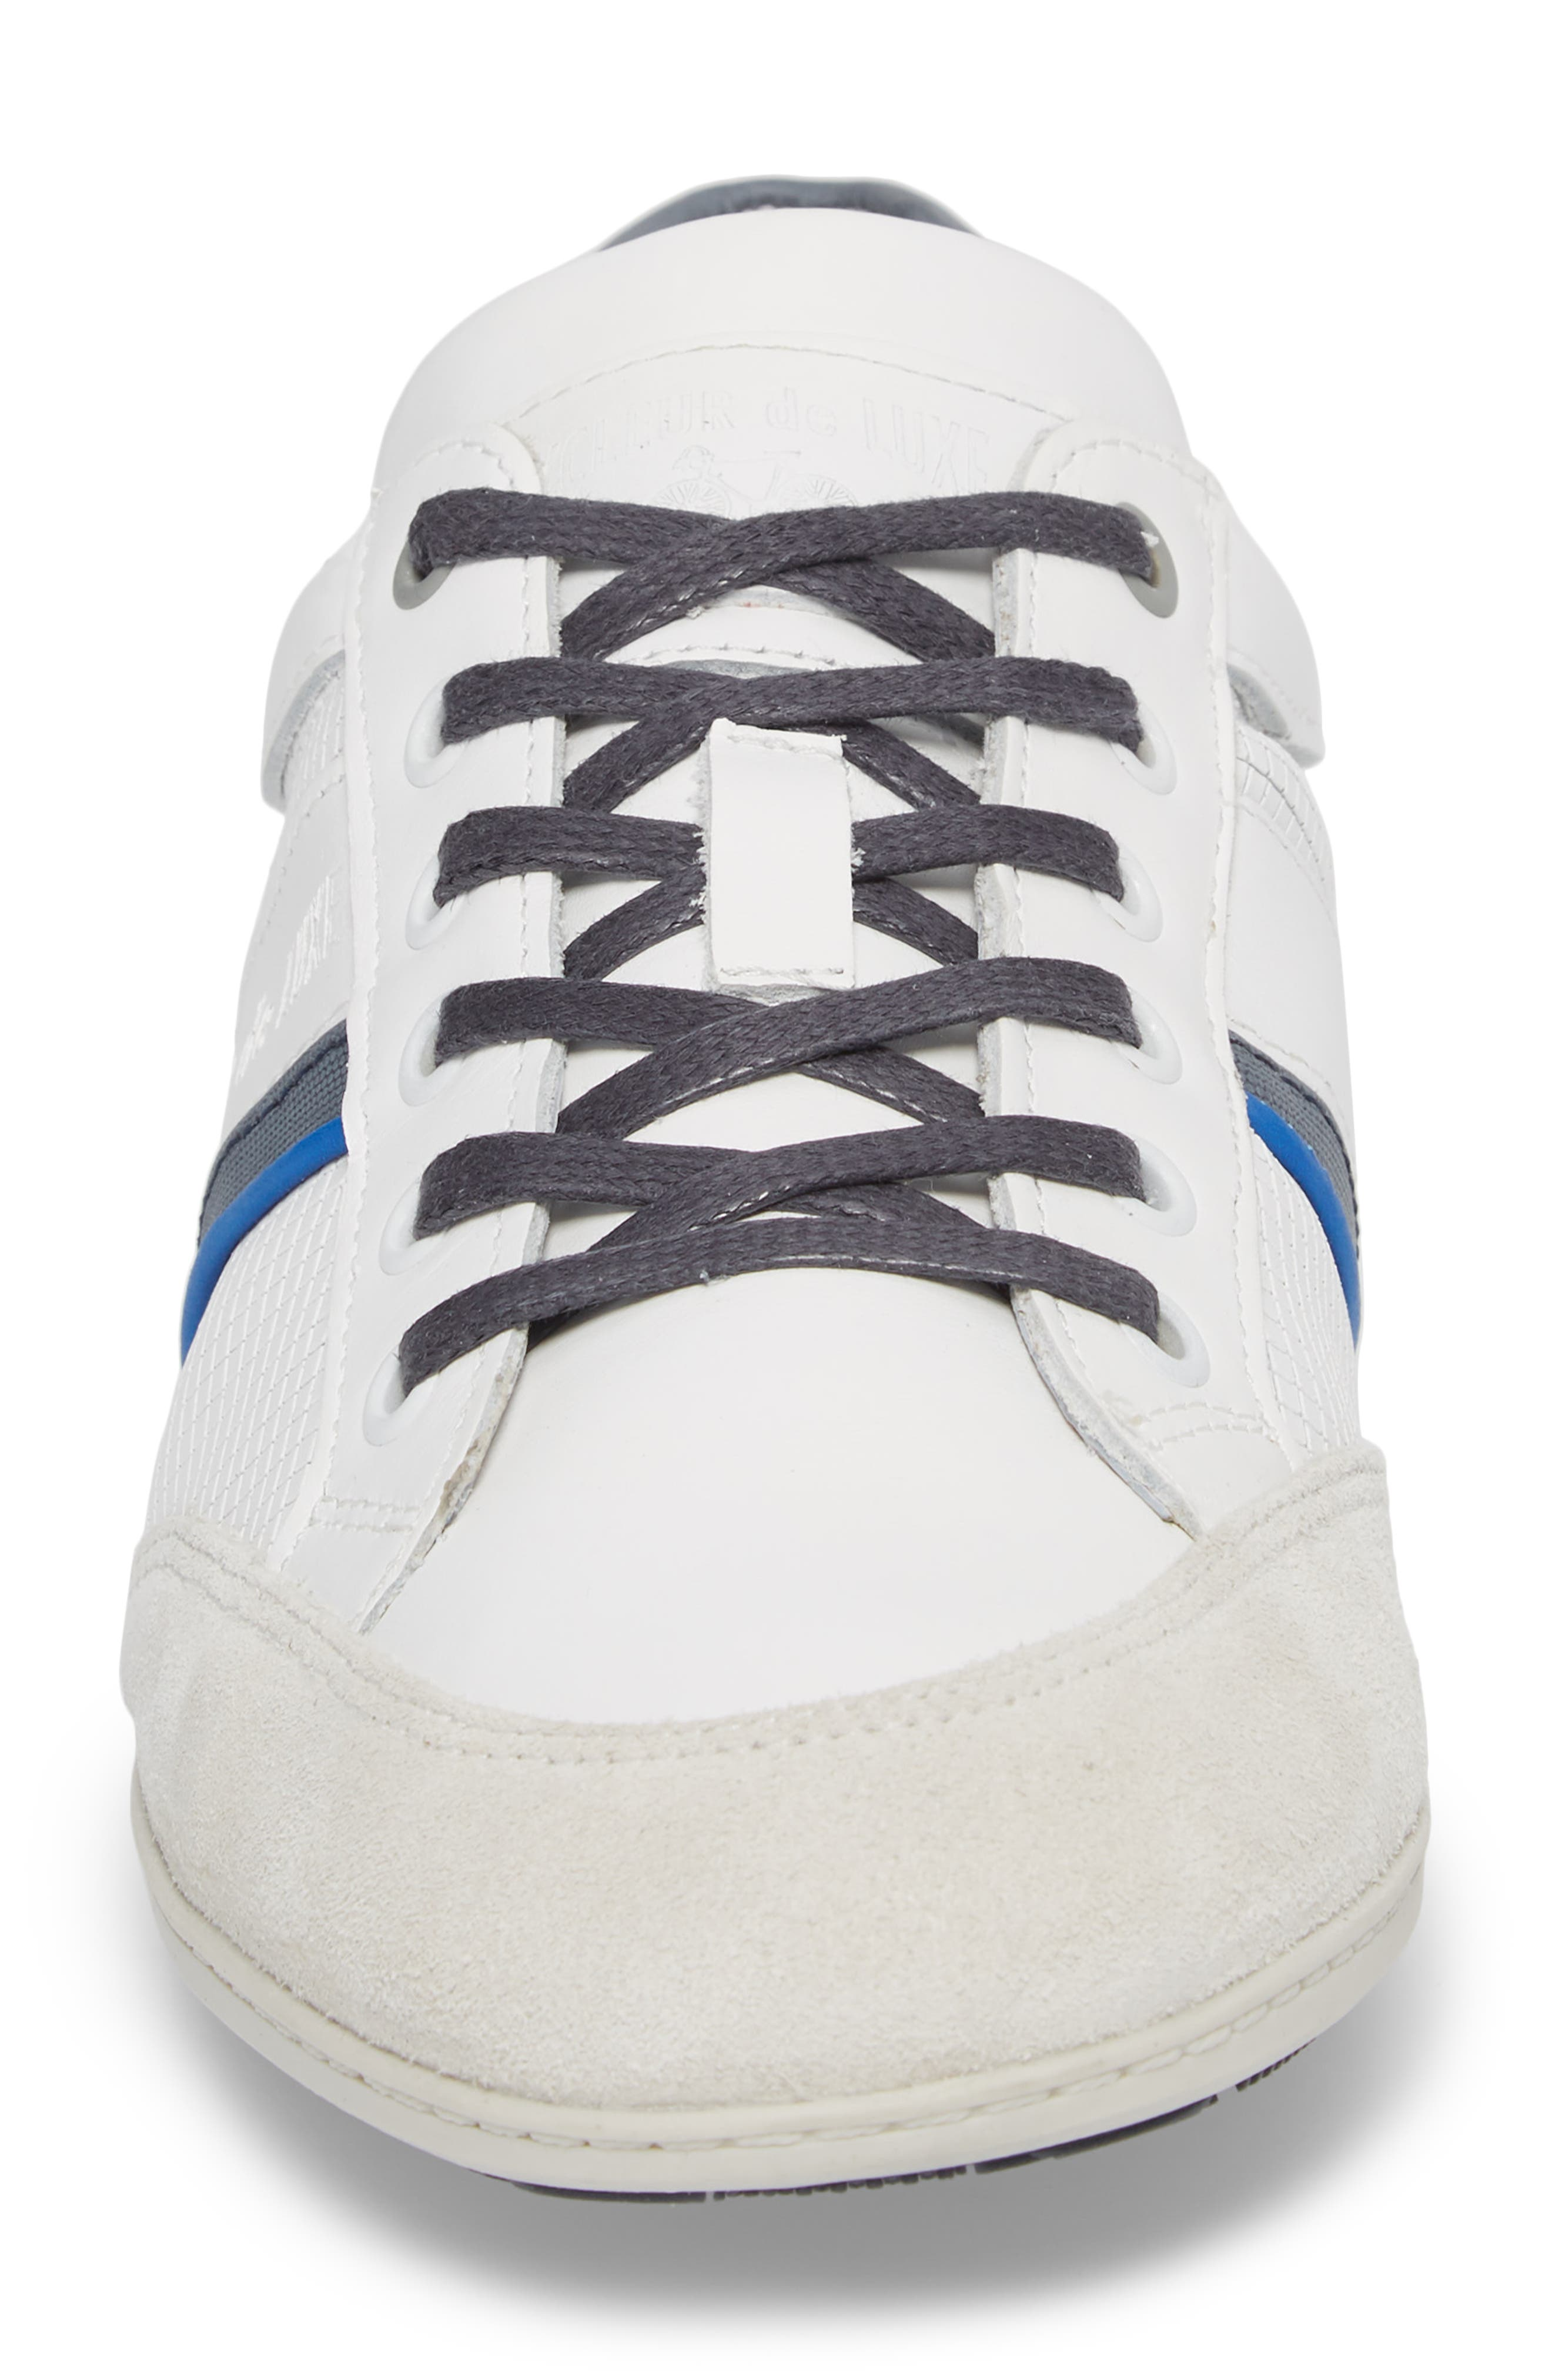 Bahamas Low Top Sneaker,                             Alternate thumbnail 4, color,                             Off White/ Navy Leather